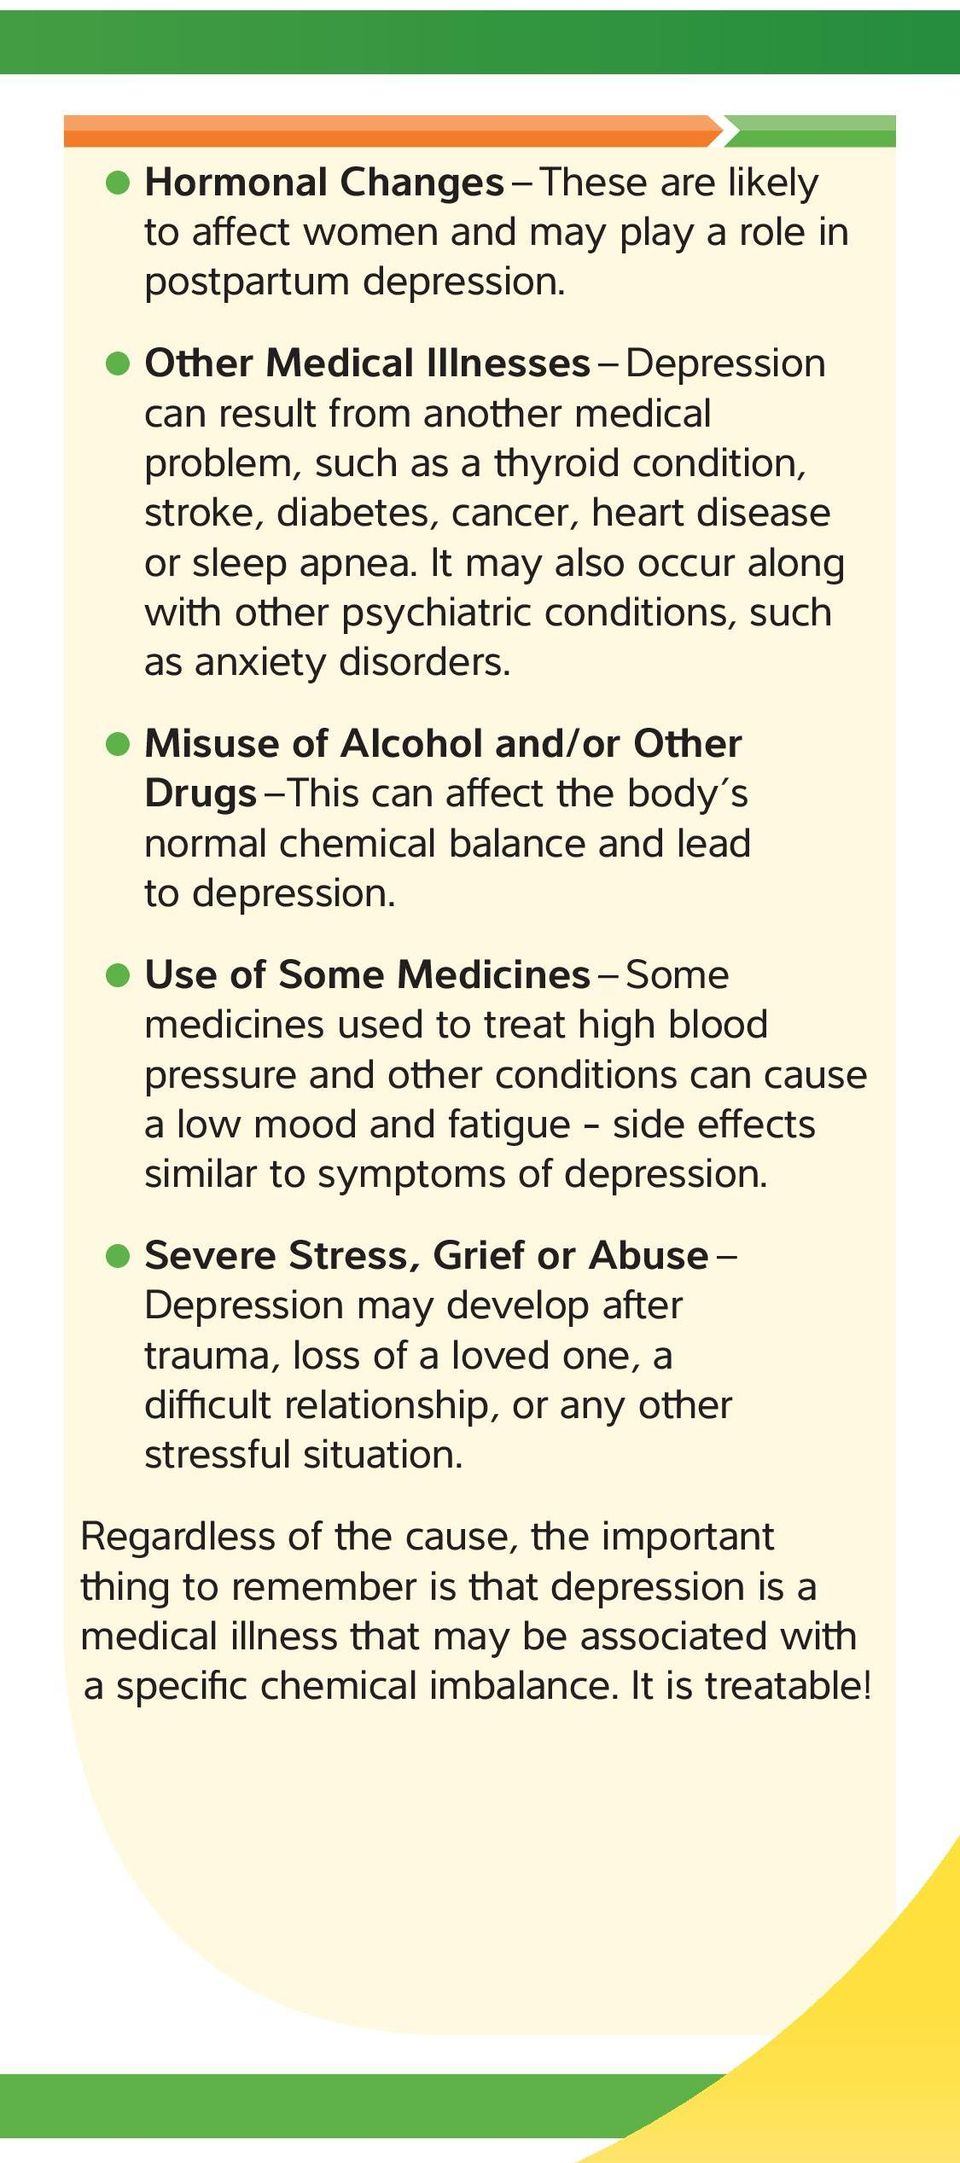 It may also occur along with other psychiatric conditions, such as anxiety disorders. Misuse of Alcohol and/or Other Drugs This can affect the body s normal chemical balance and lead to depression.